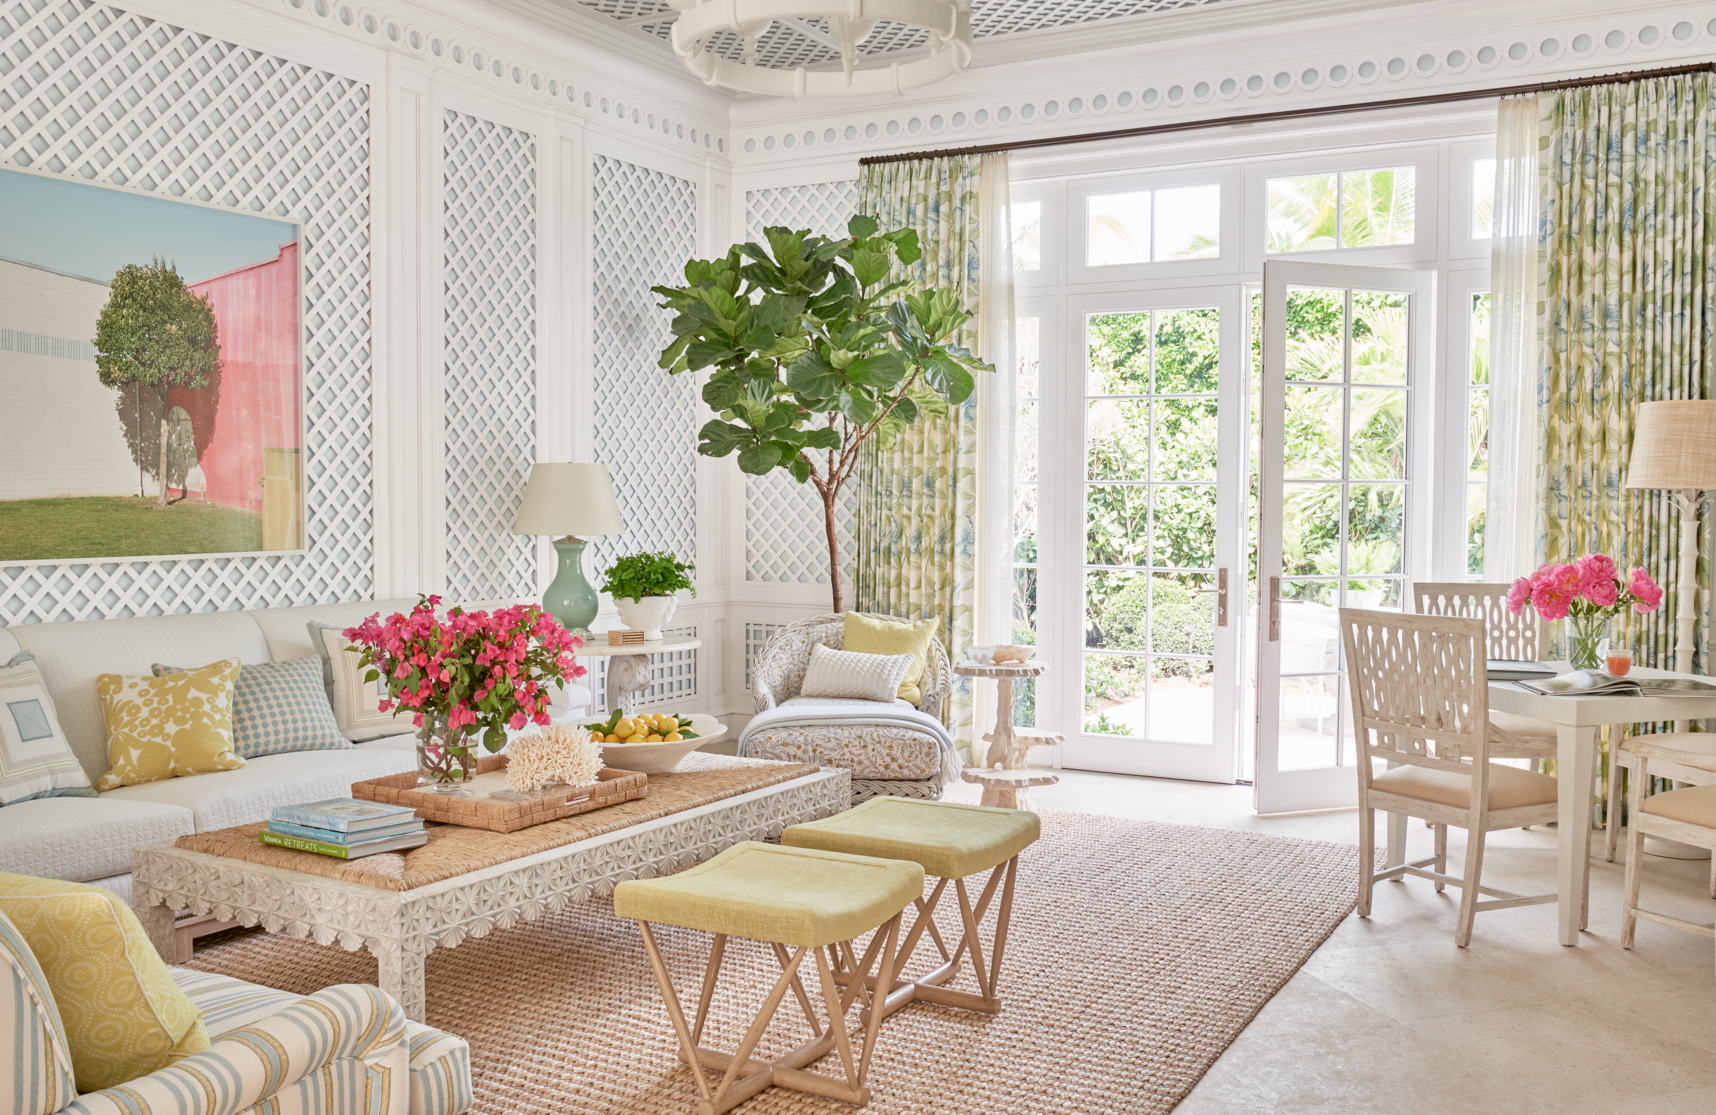 Palm Beach Home Tour: See Inside the Crisp and Fresh Florida ... on luxe home interiors, victoria beckham house interiors, andrew carnegie house interiors, bill gates house interiors, private island house interiors, celine dion house interiors,